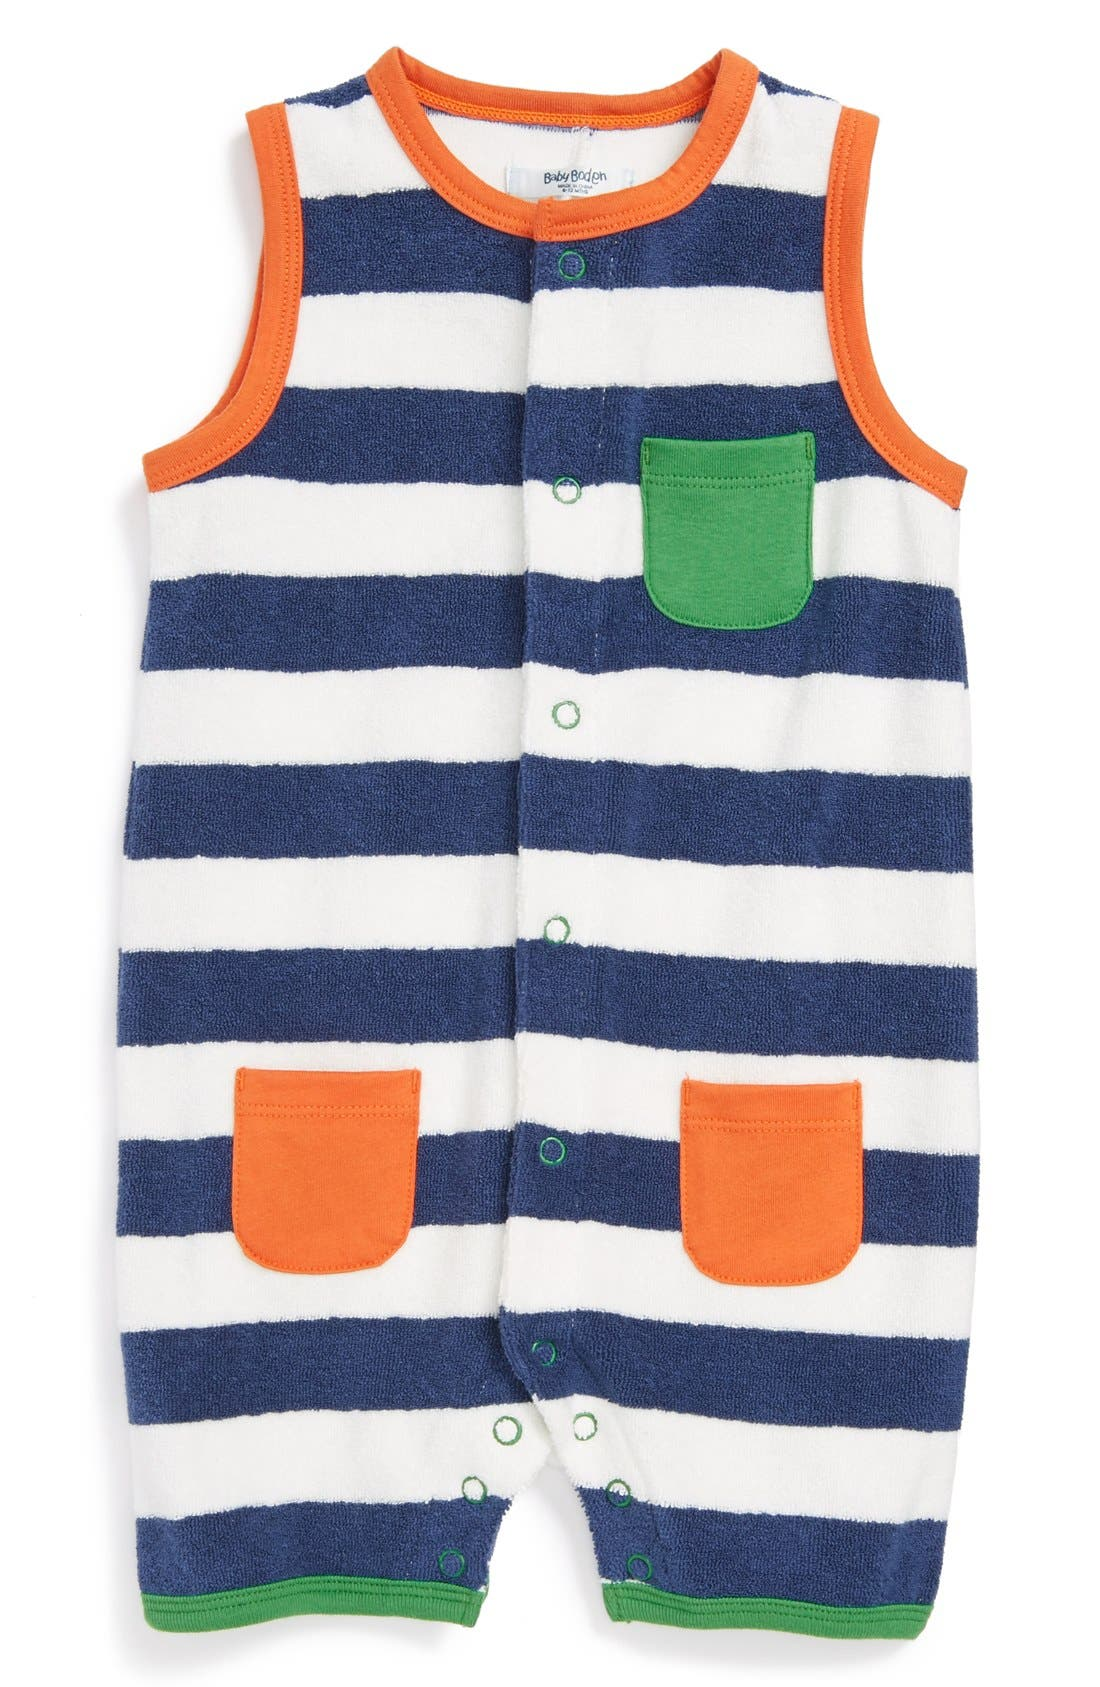 Main Image - Mini Boden Terry Cloth Romper (Baby)